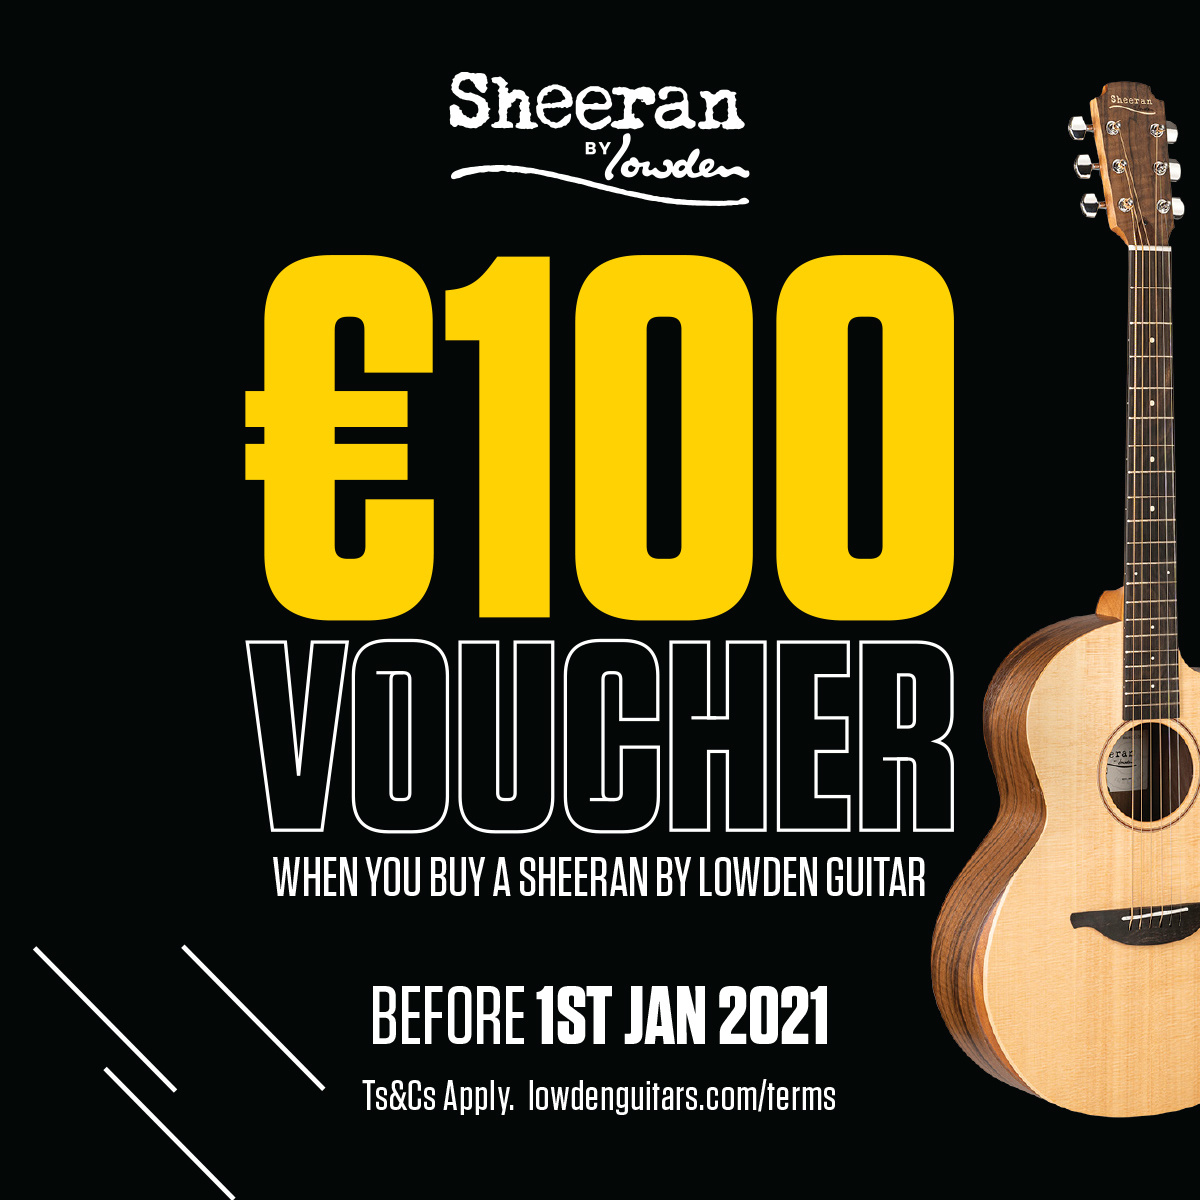 € 100, - Voucher with every Sheeran by Lowden Guitar!